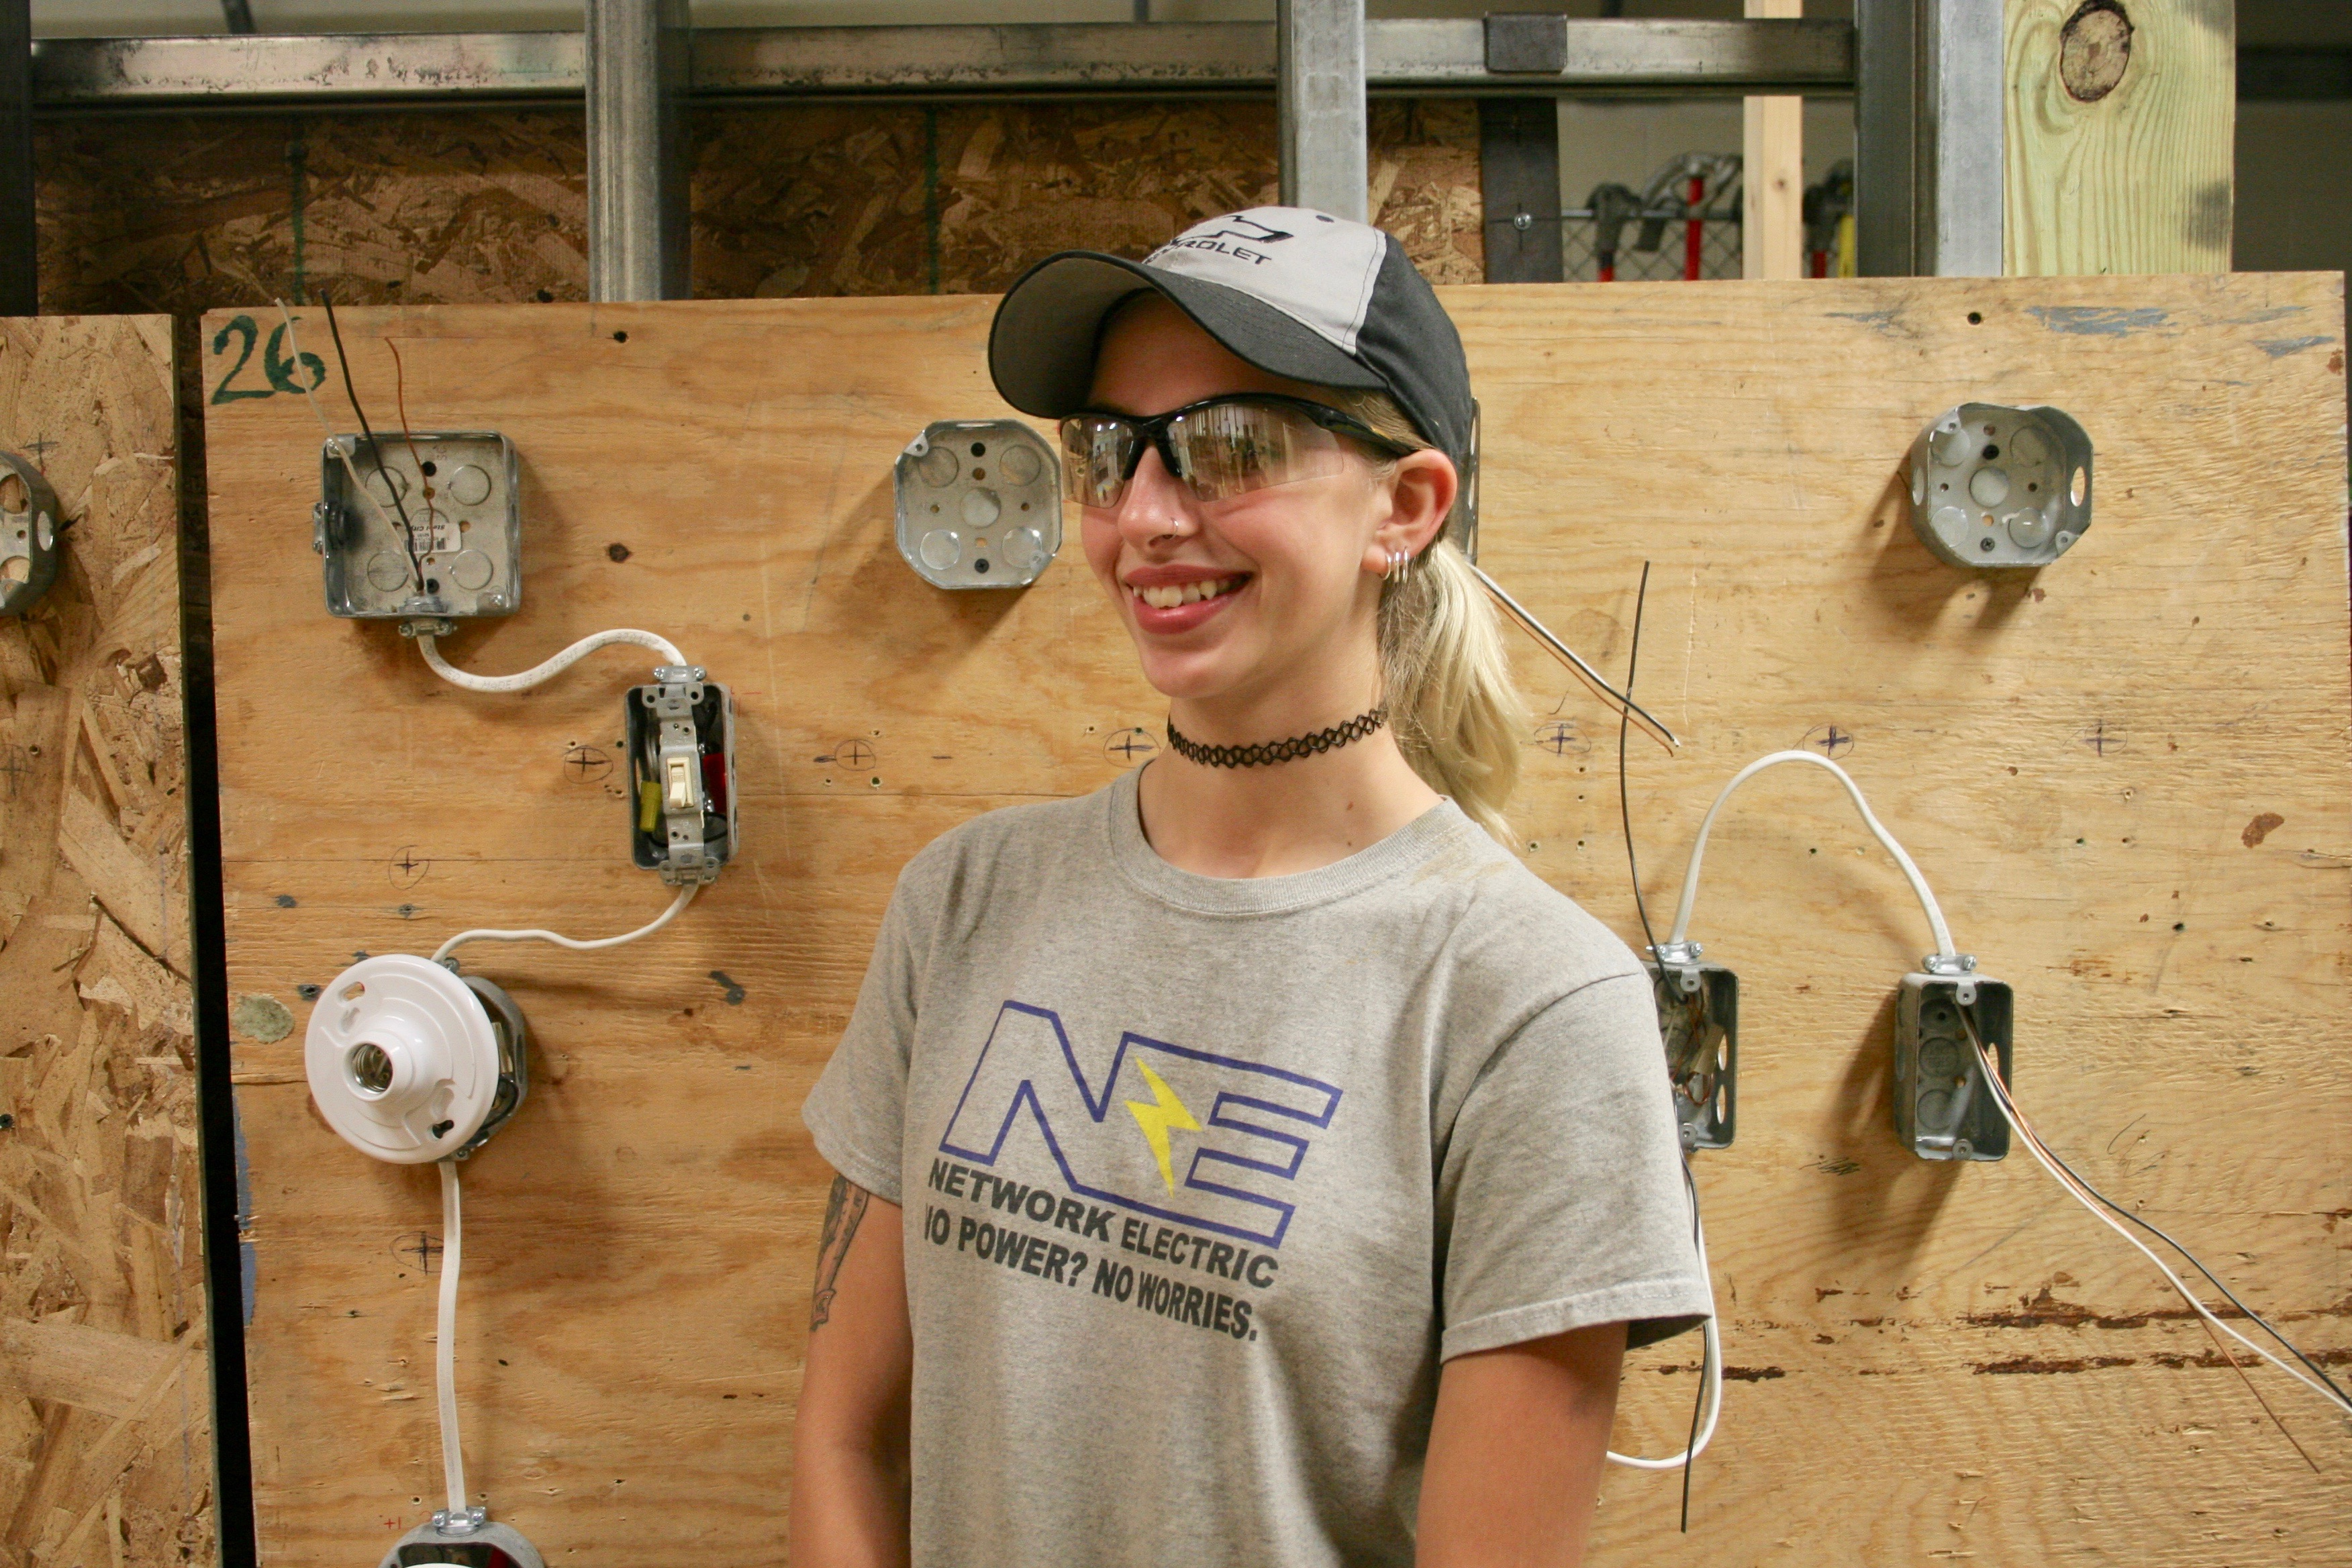 Adult Ed Student Excels in Traditionally Male Dominated Field